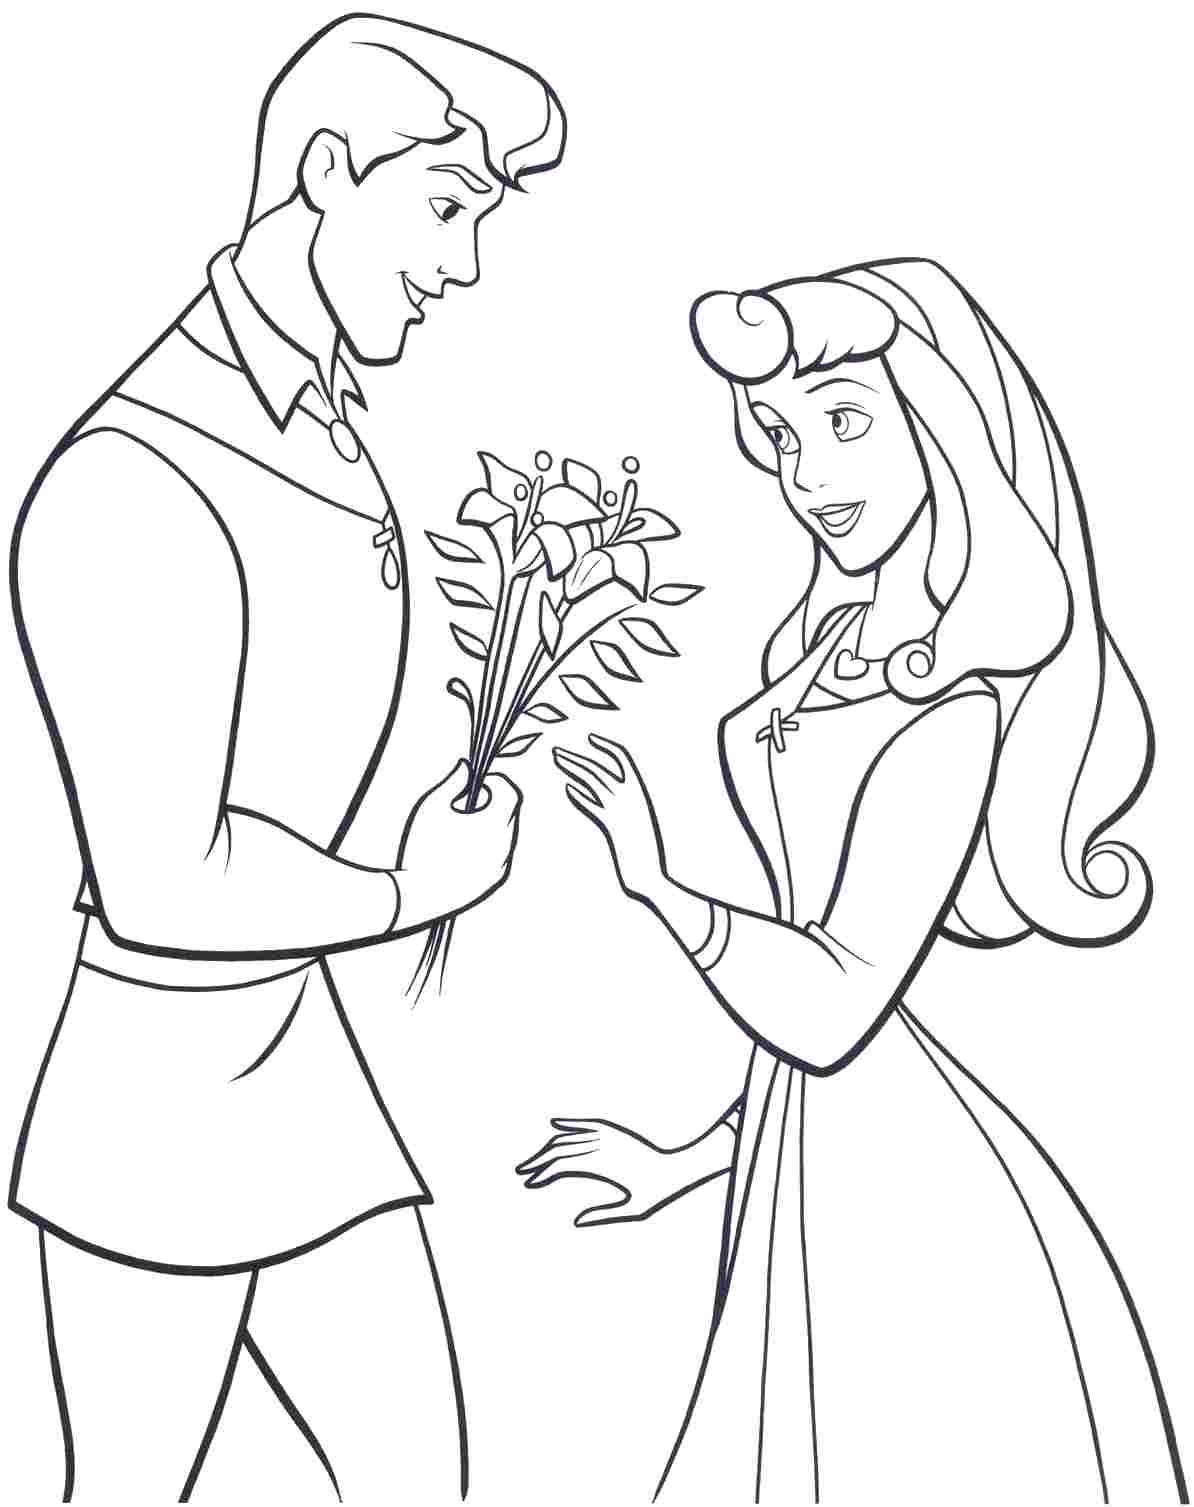 coloring pictures disney disney princess aurora download printable coloring image coloring pictures disney